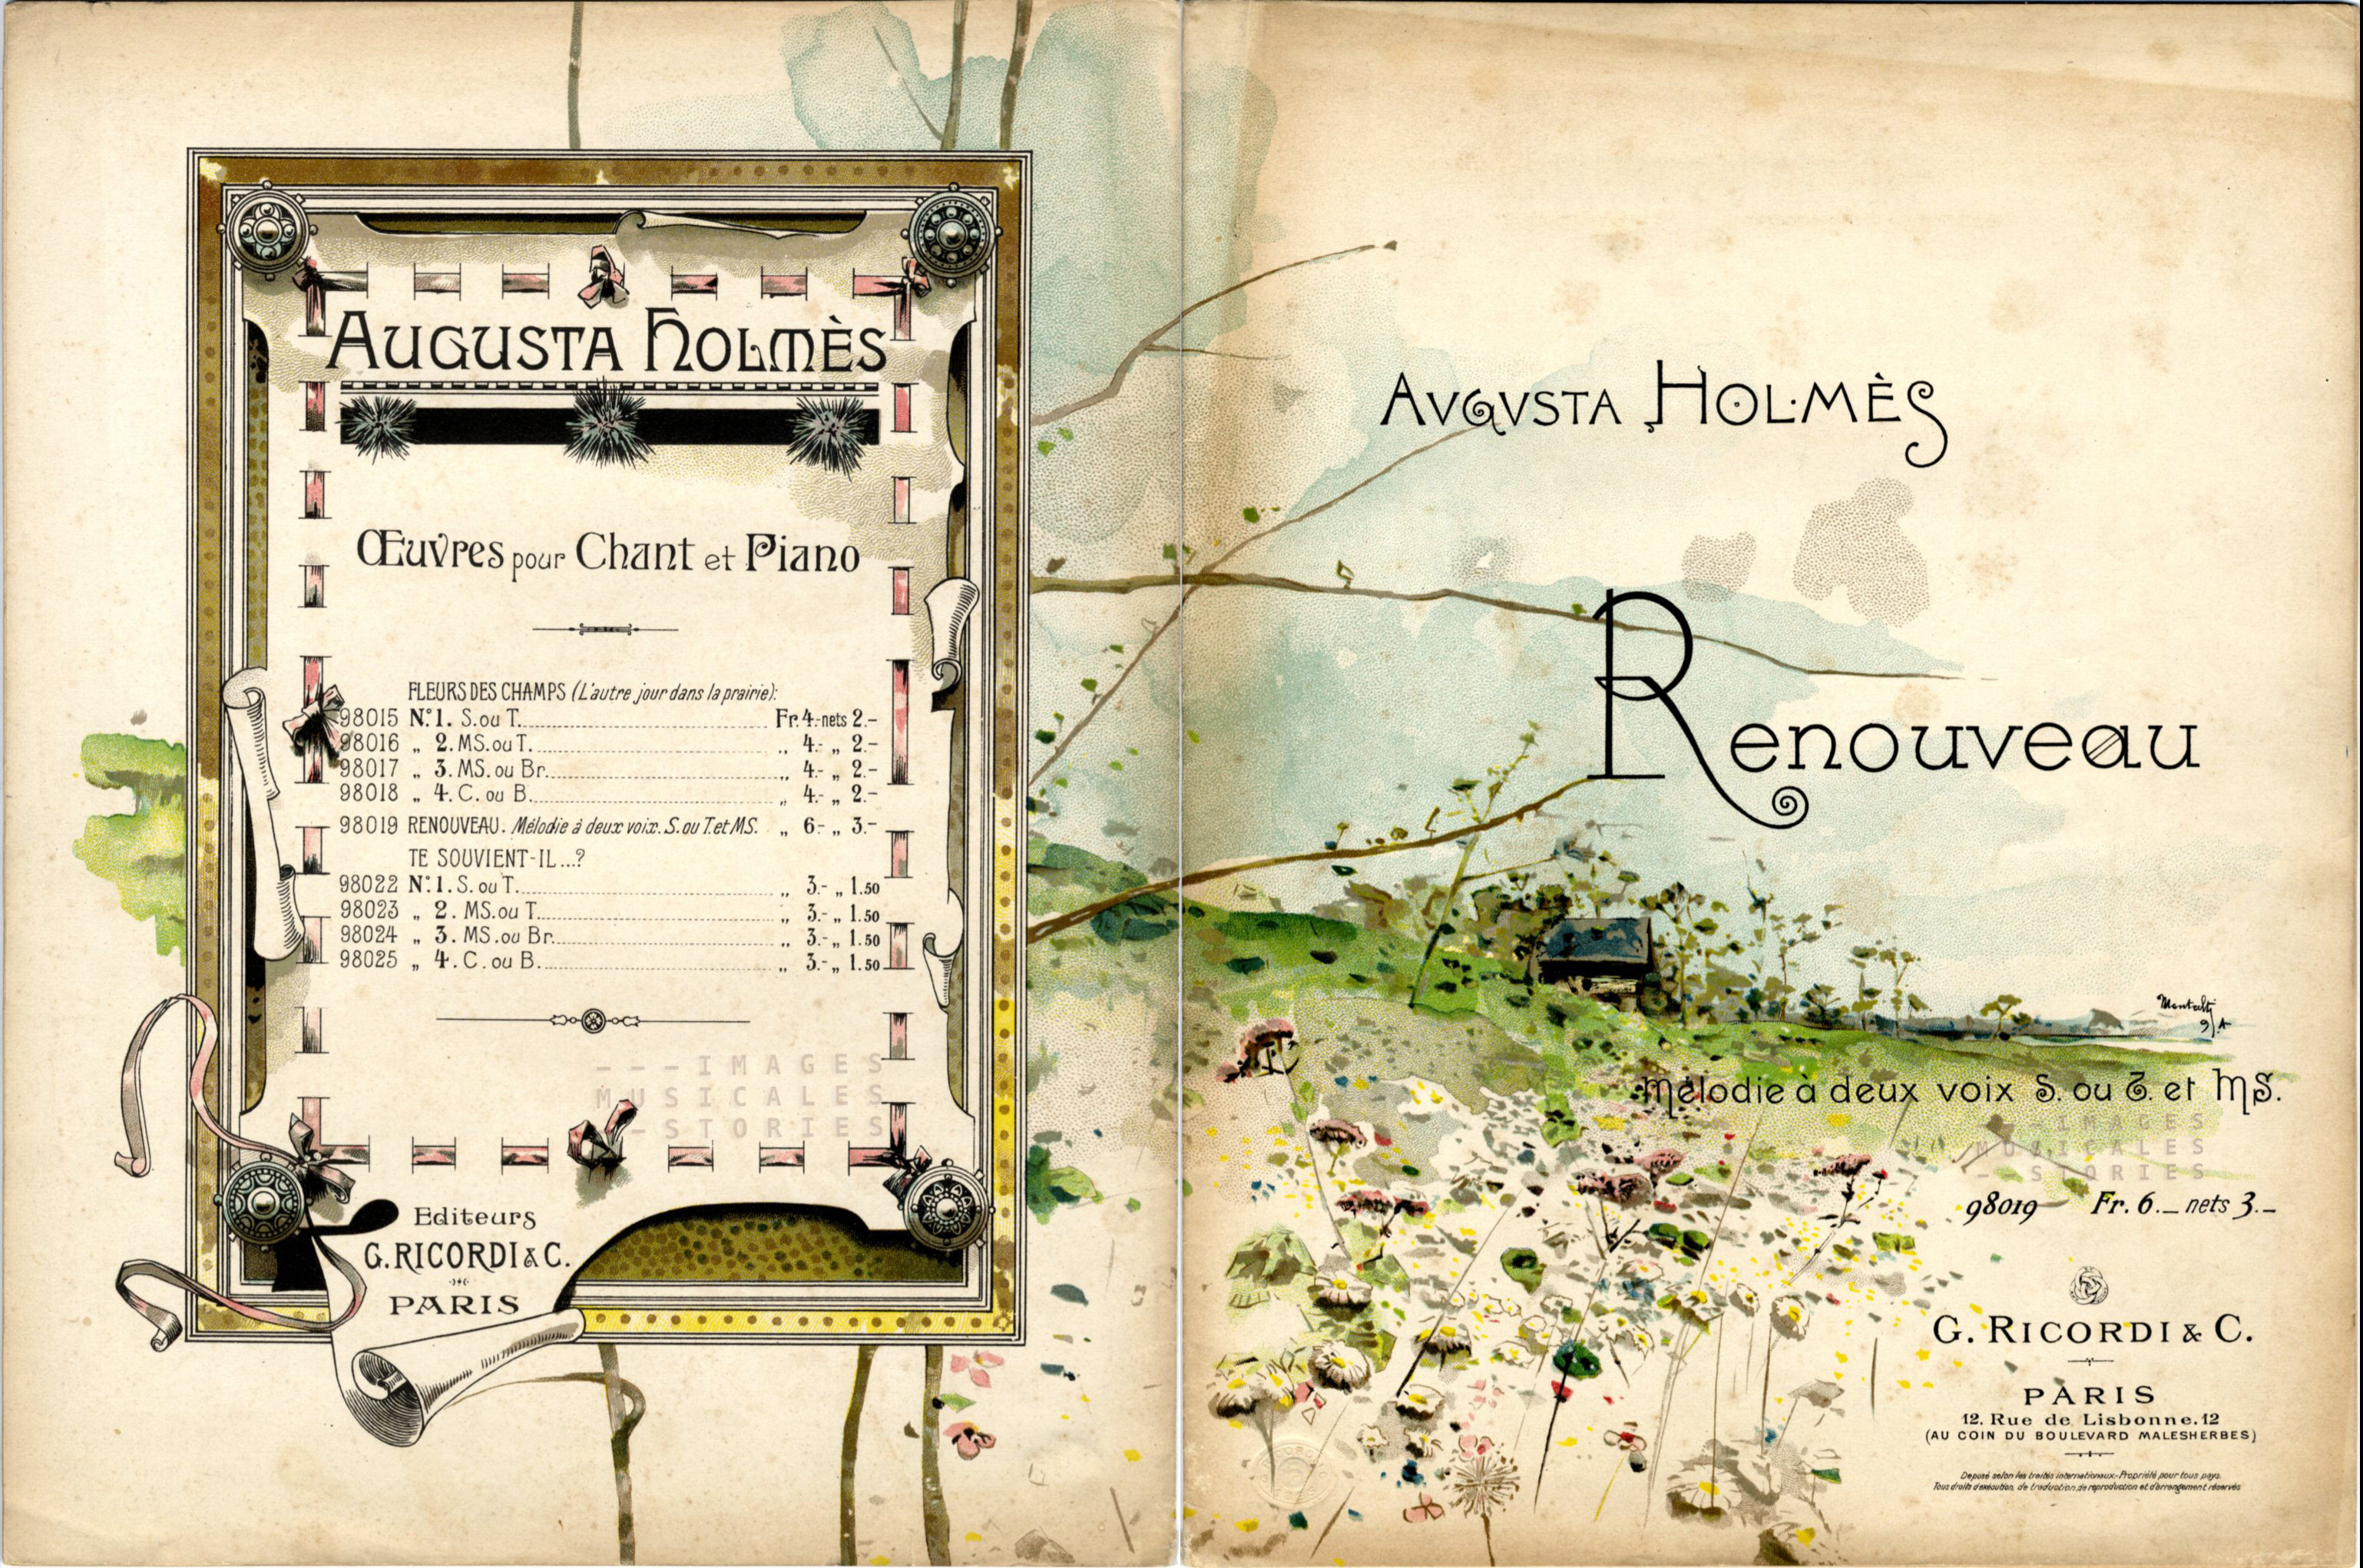 'Renouveau', composed by Augusta Holmes